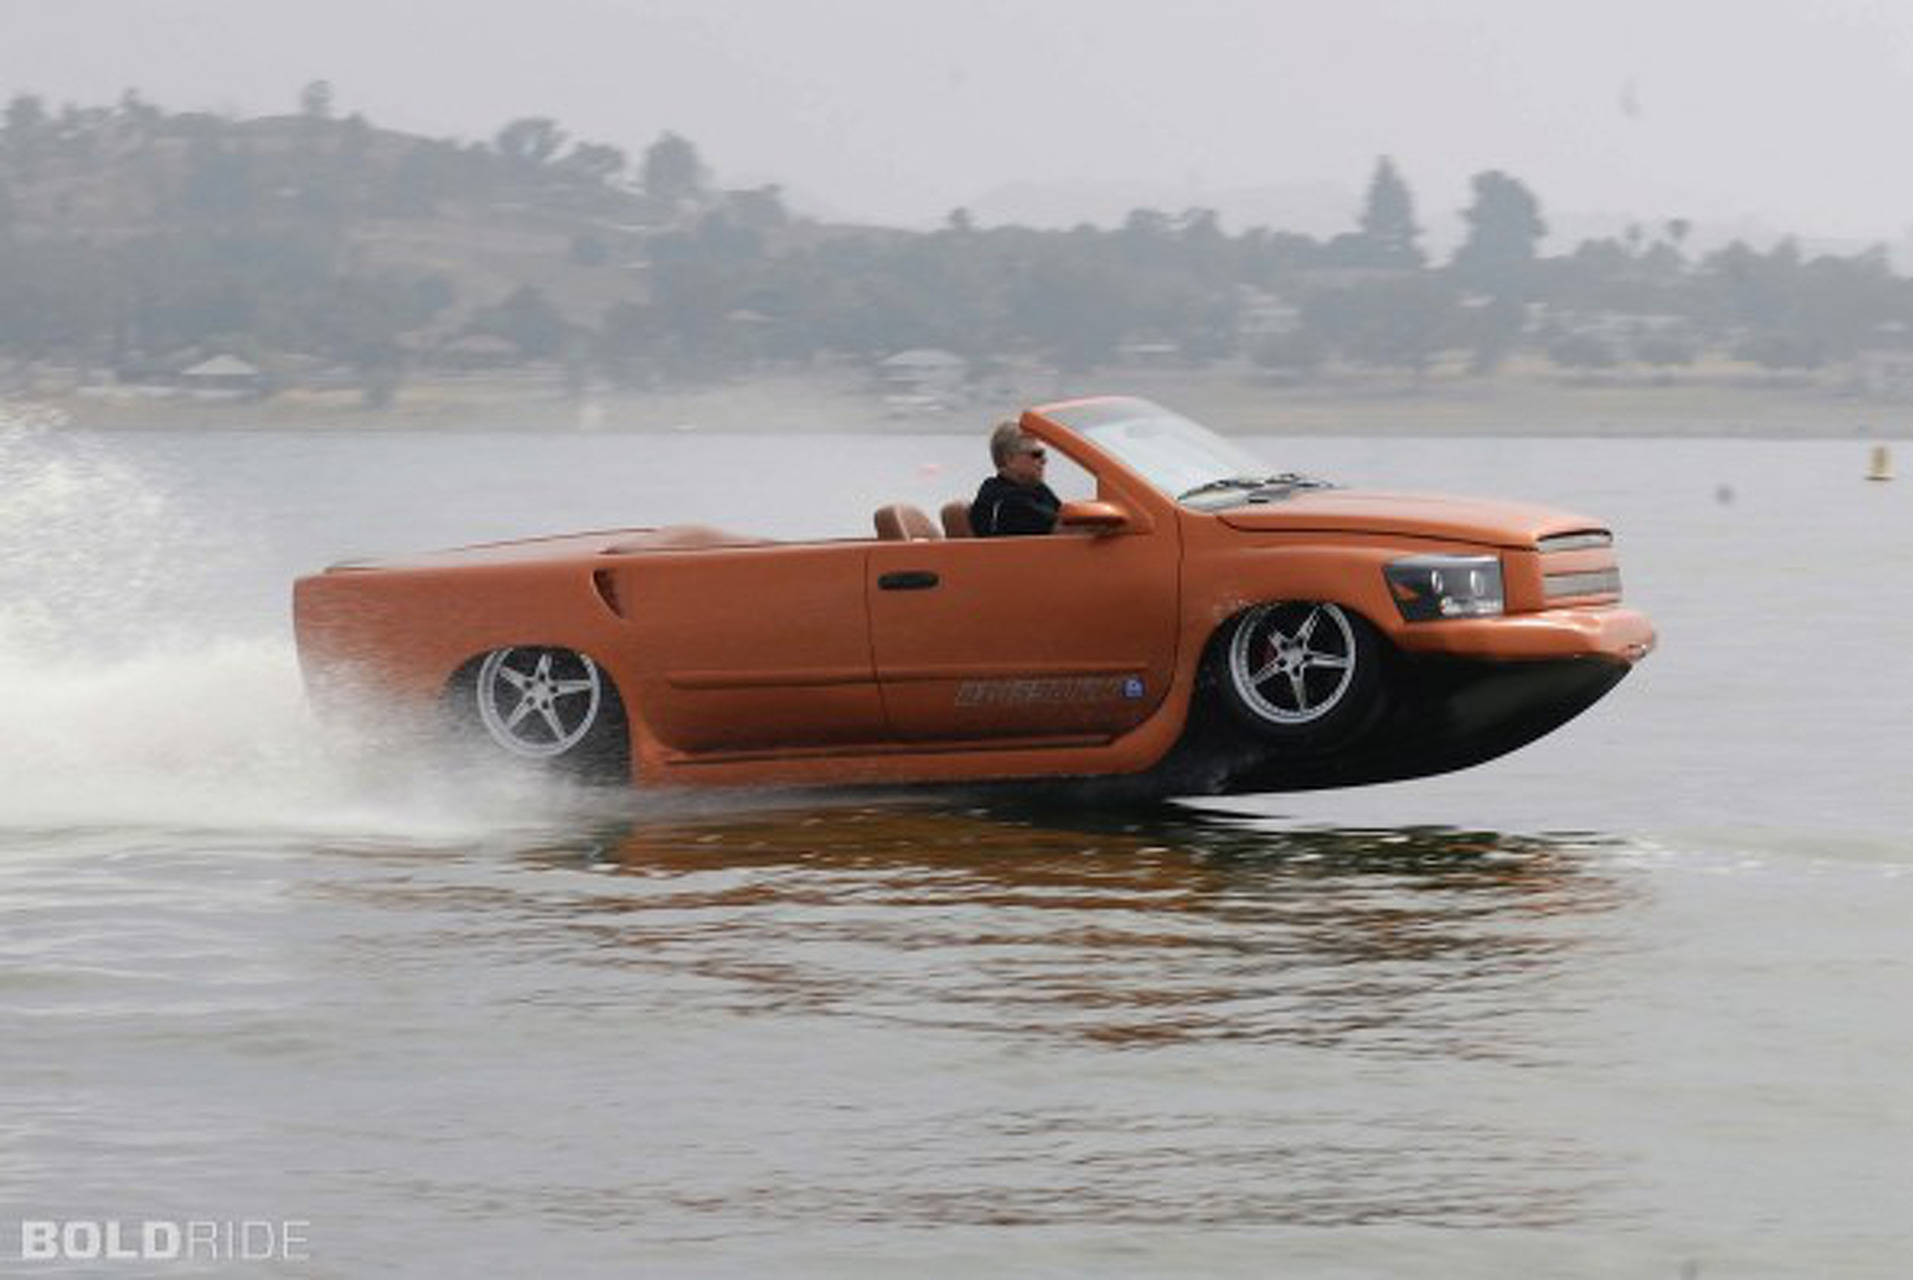 5 Water-Going Cars To Go Anywhere